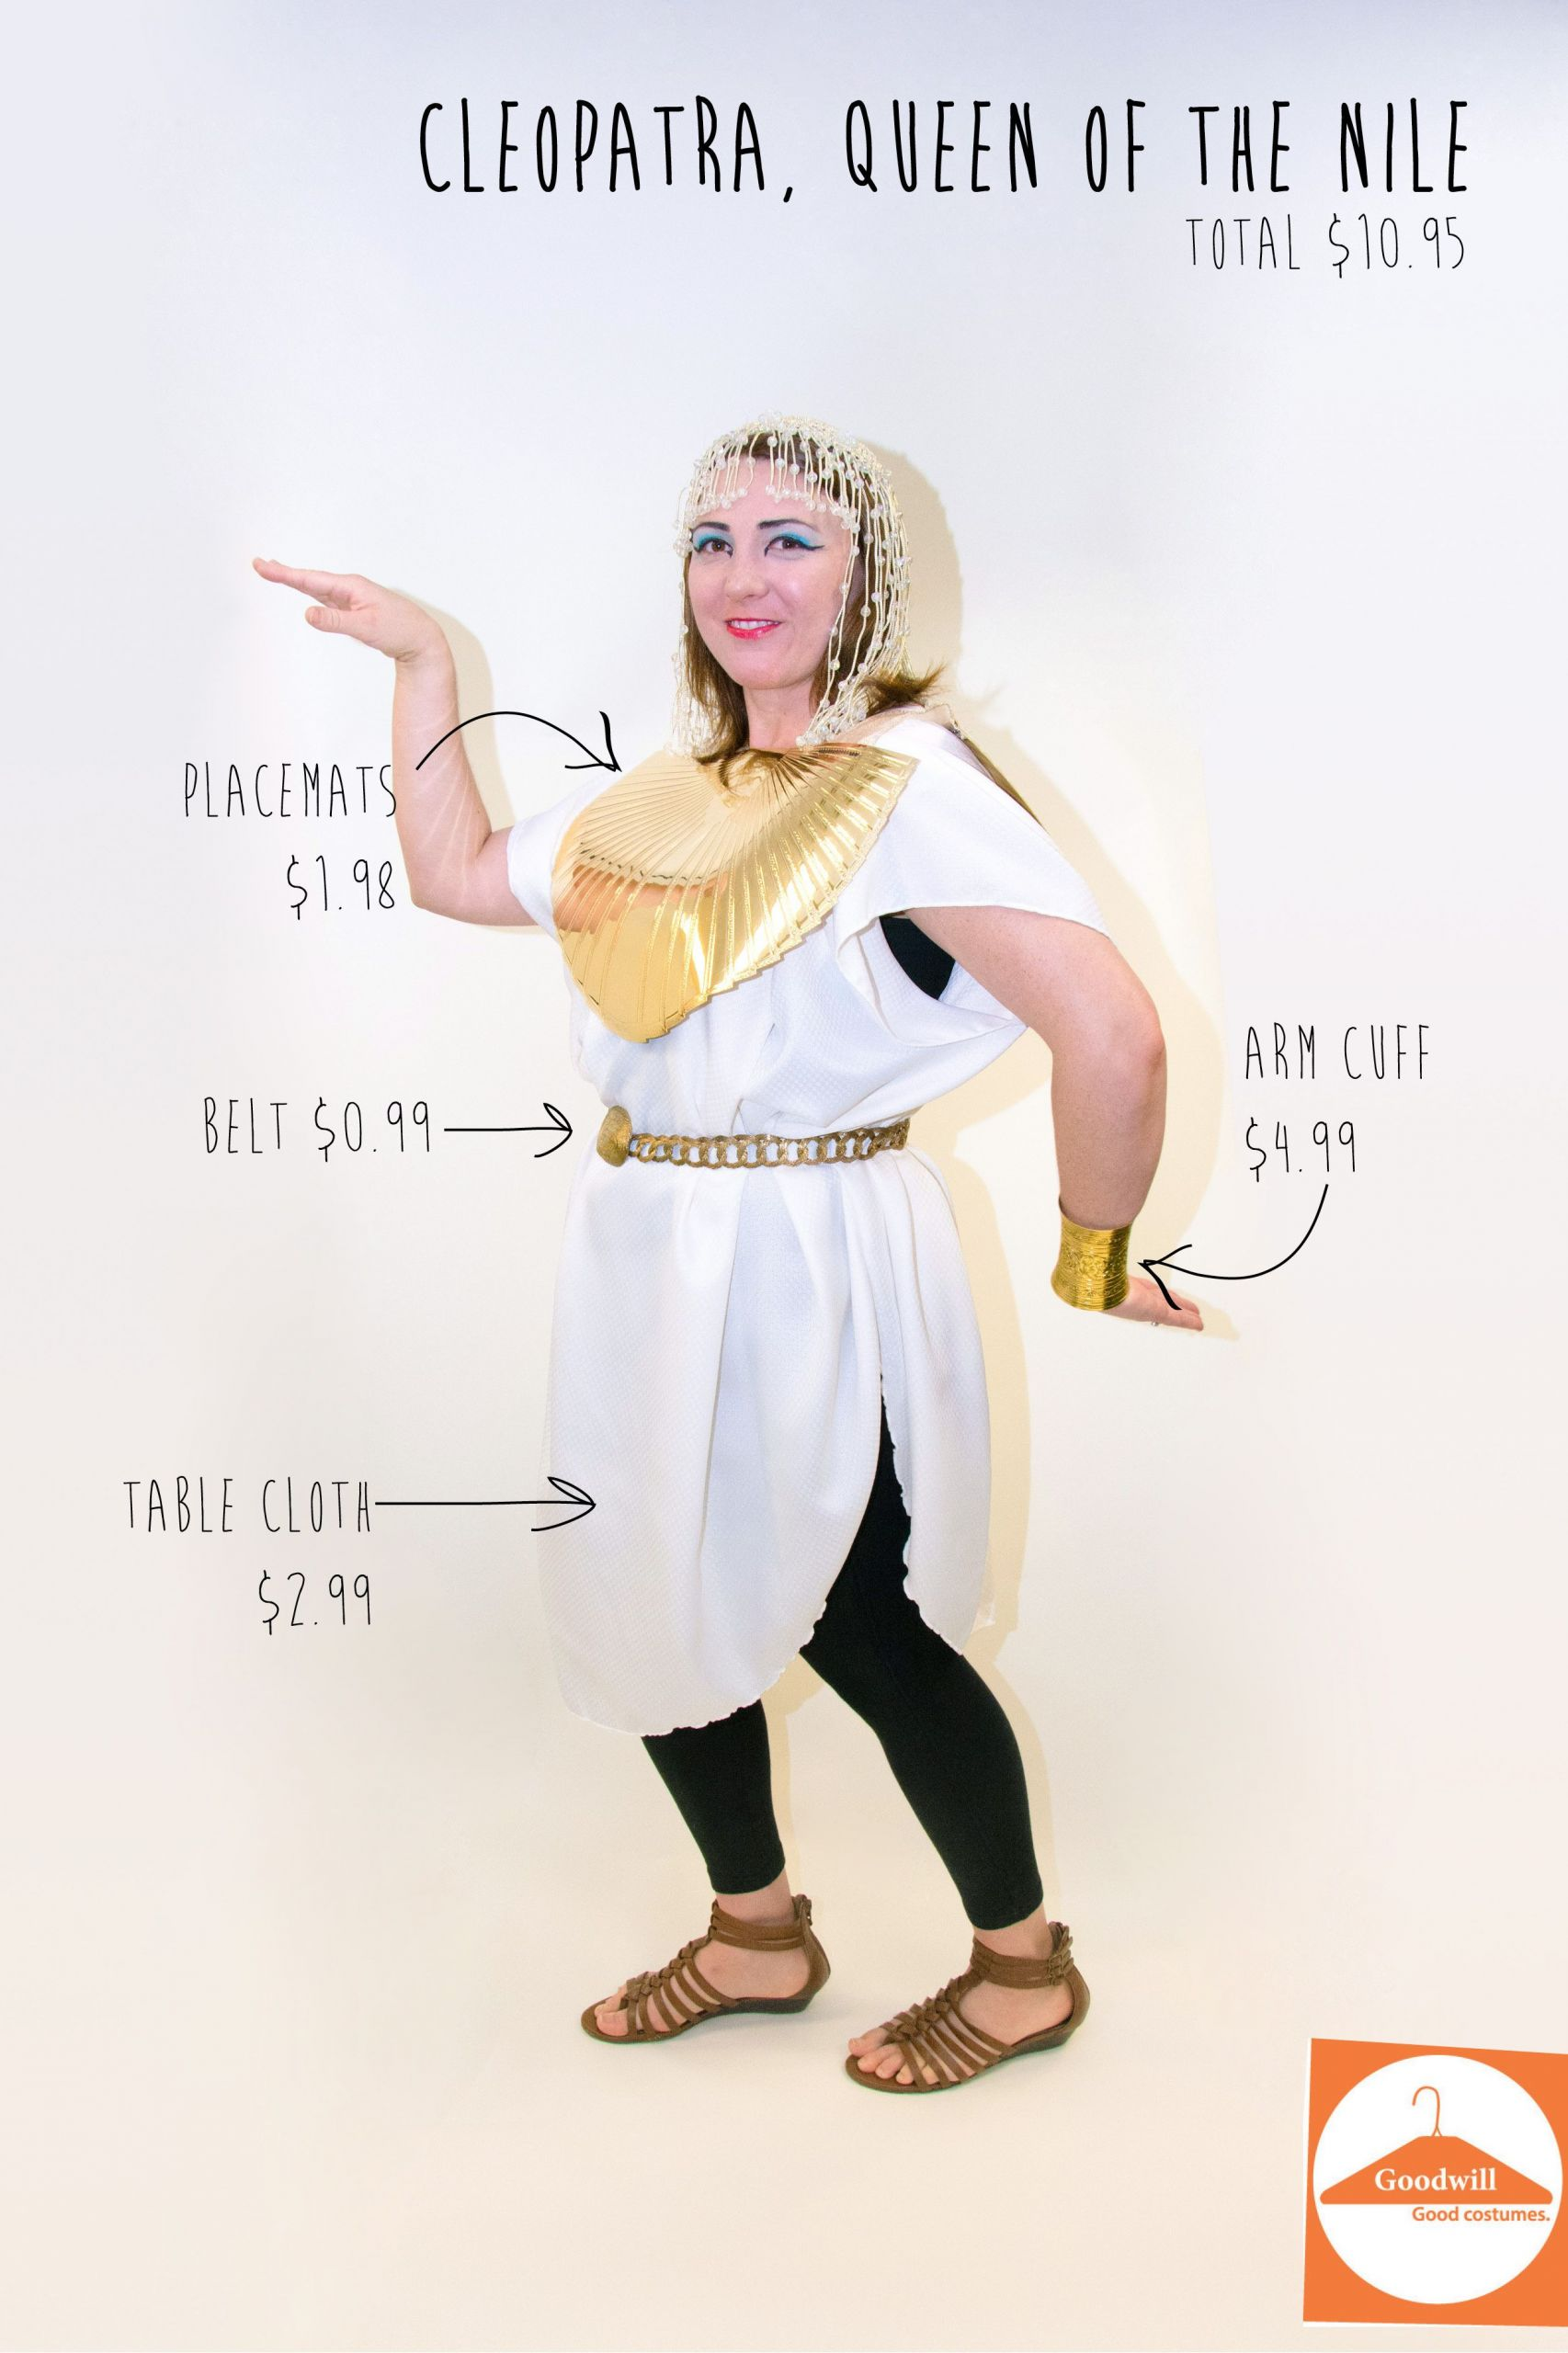 DIY Egyptian Costume  DIY Cleopatra costume from a table cloth and placemats